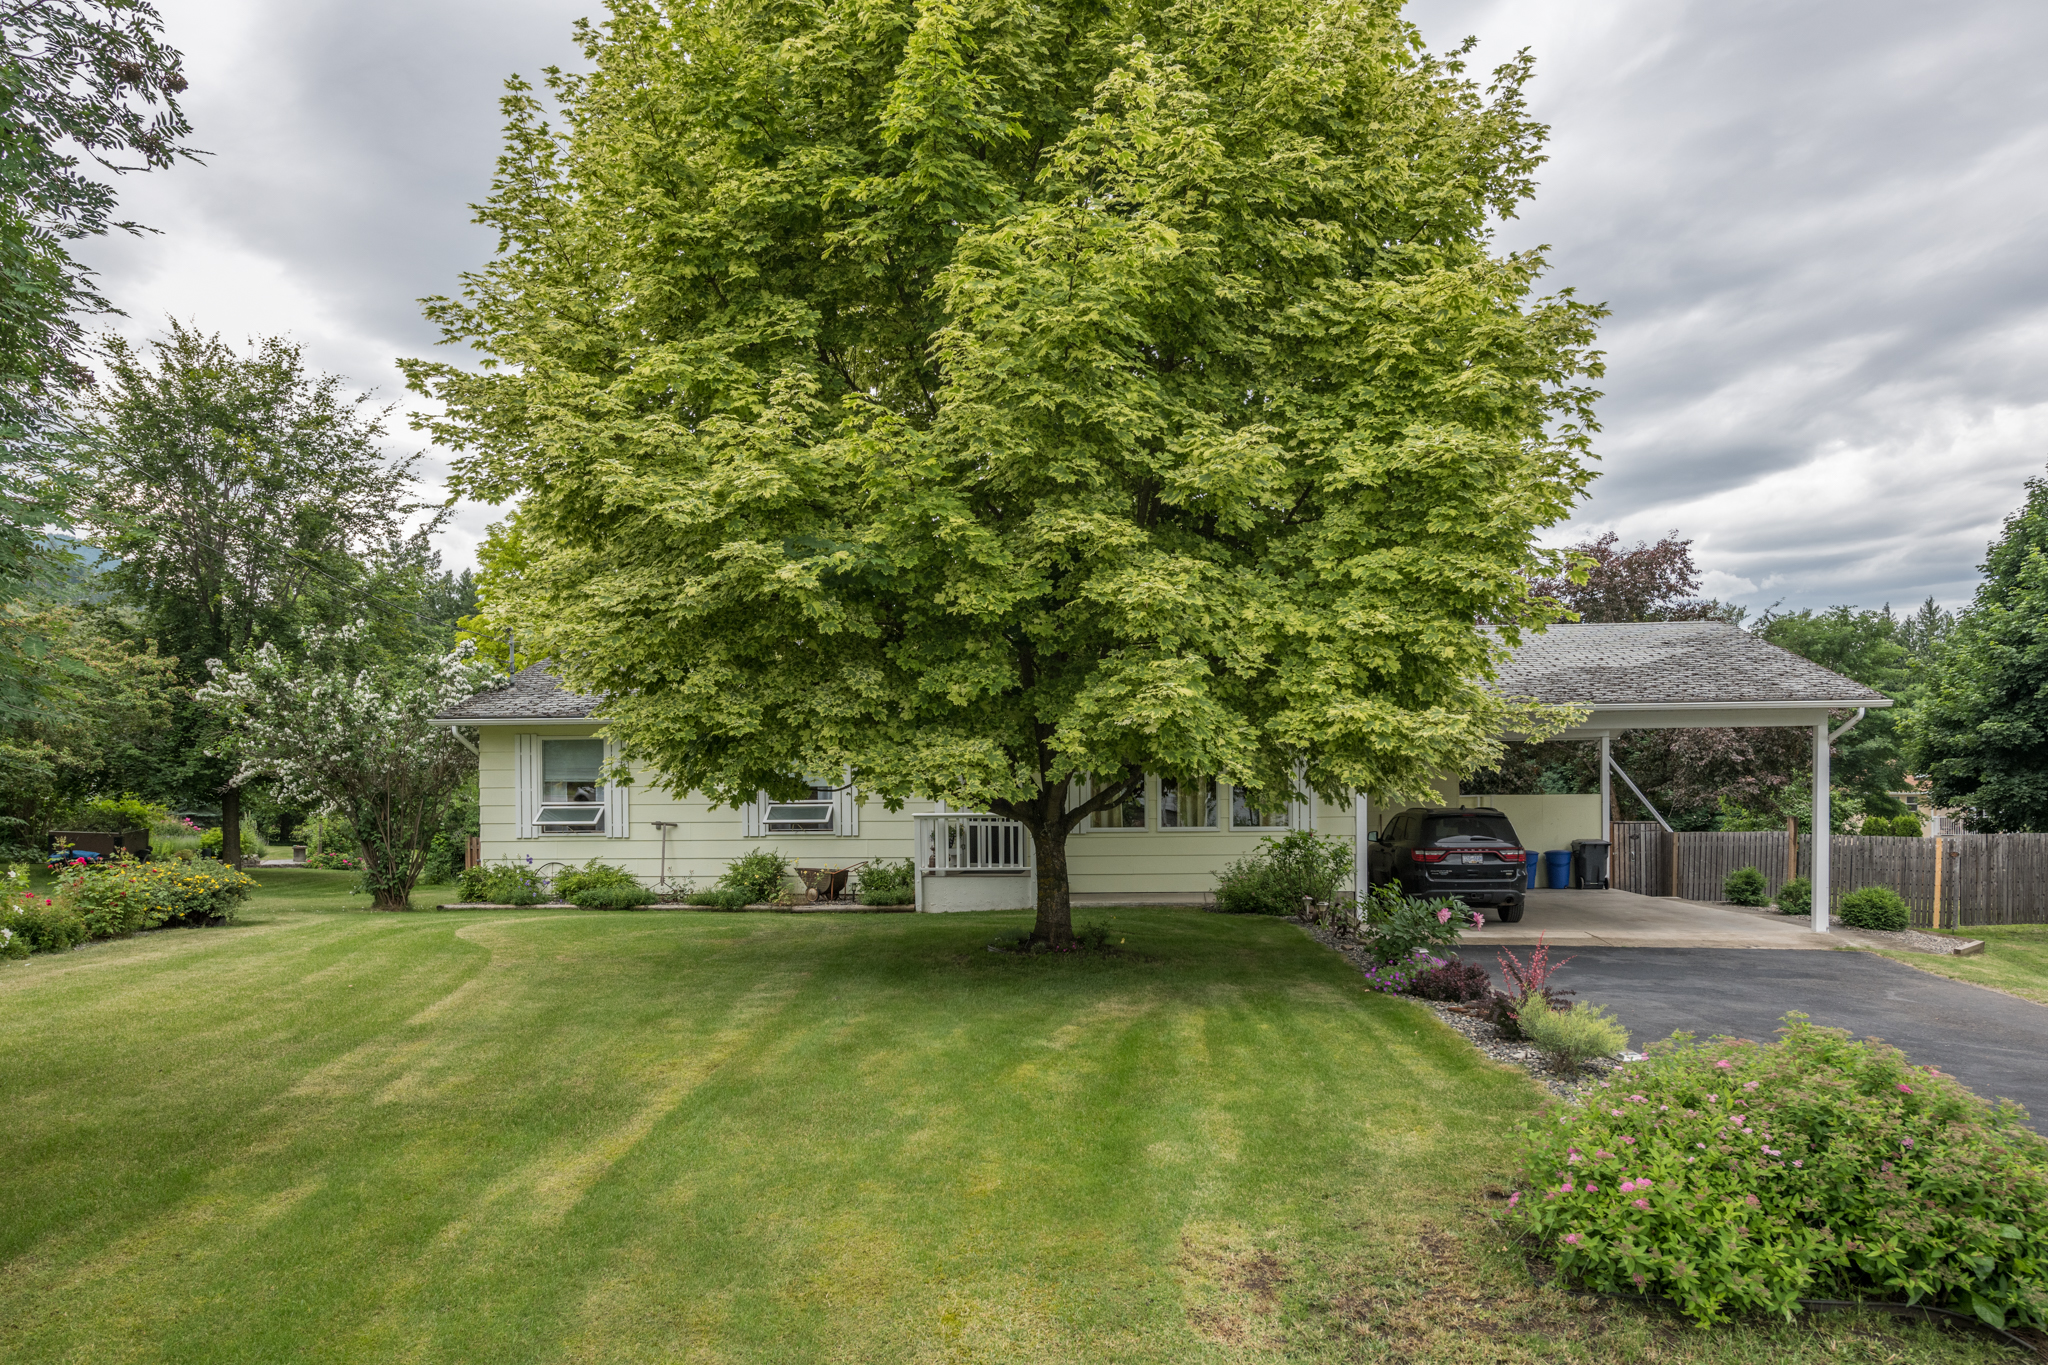 3467 Lockhart Crescent | Armstrong, BC | $565,000